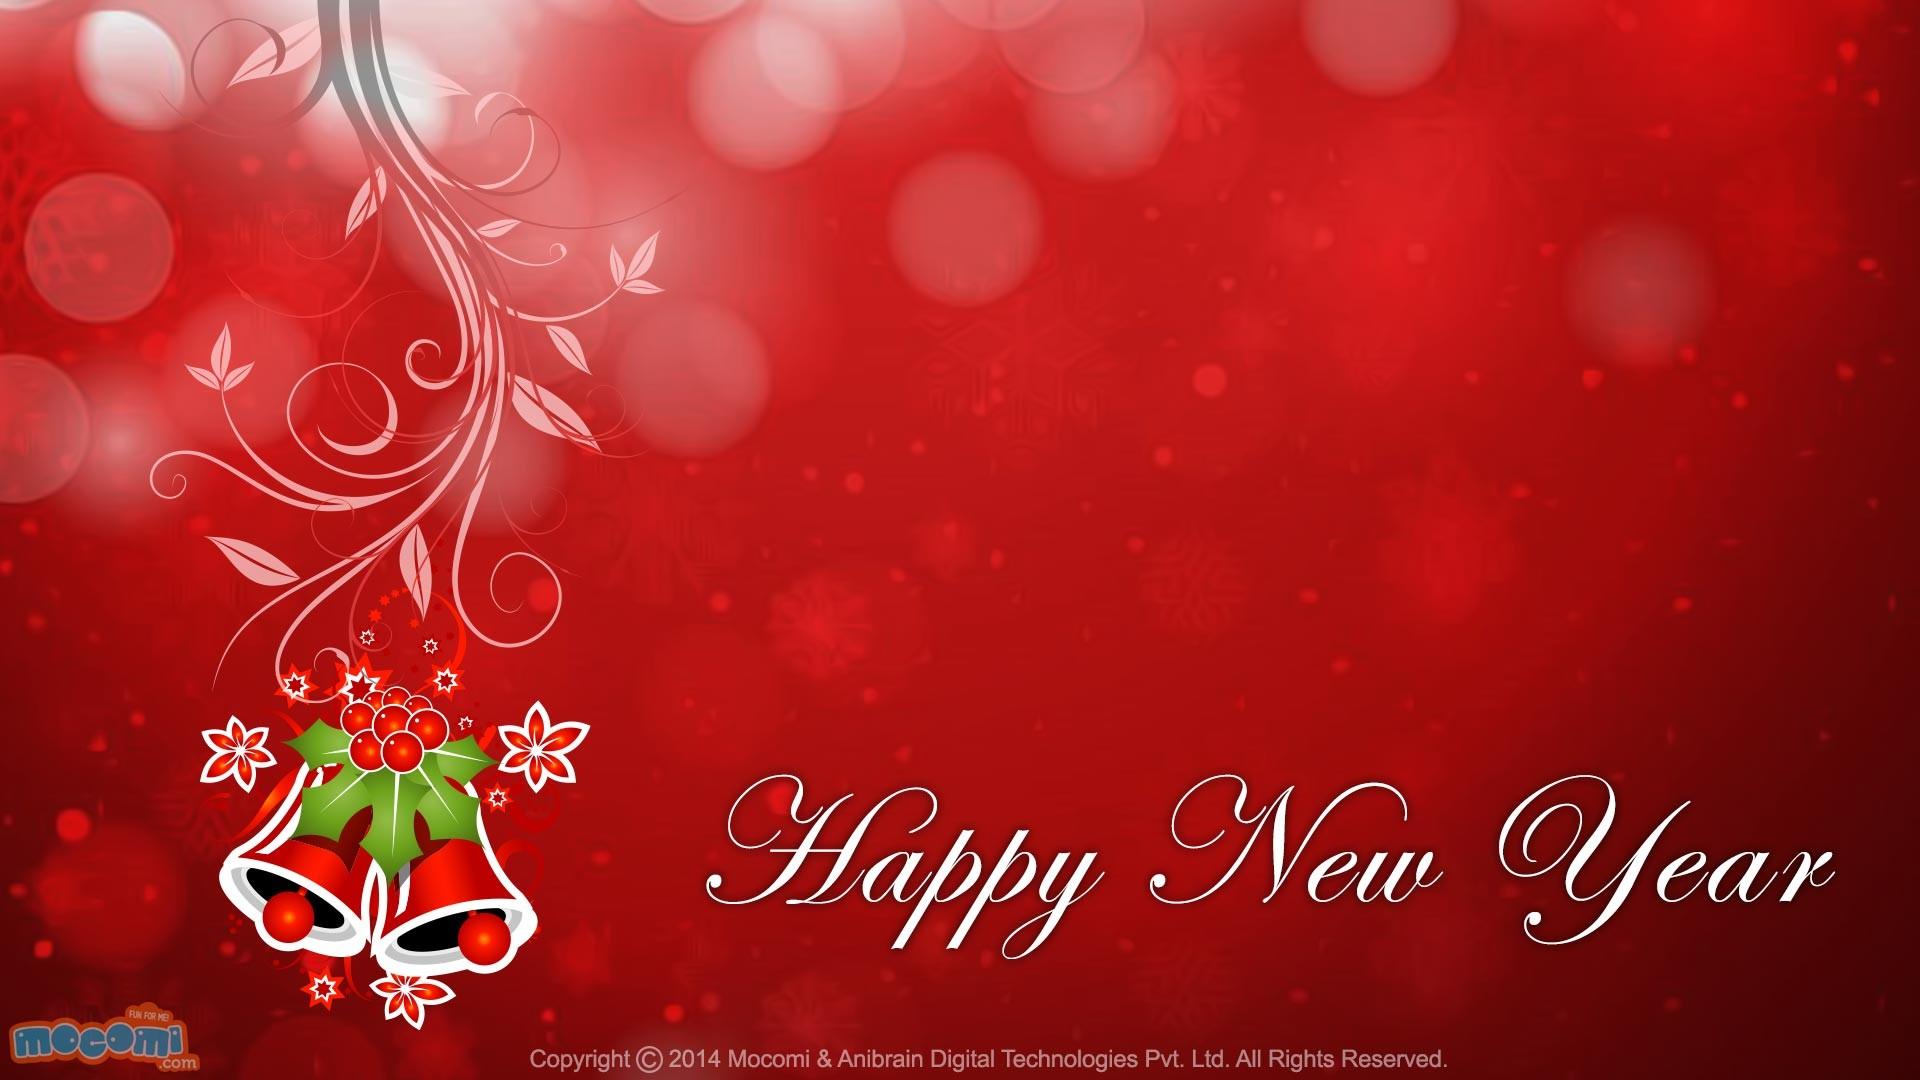 happy new year 2018 love wallpaper 74 for desktop laptop and mobiles here at xshyfccom you can download more than three million wallpaper